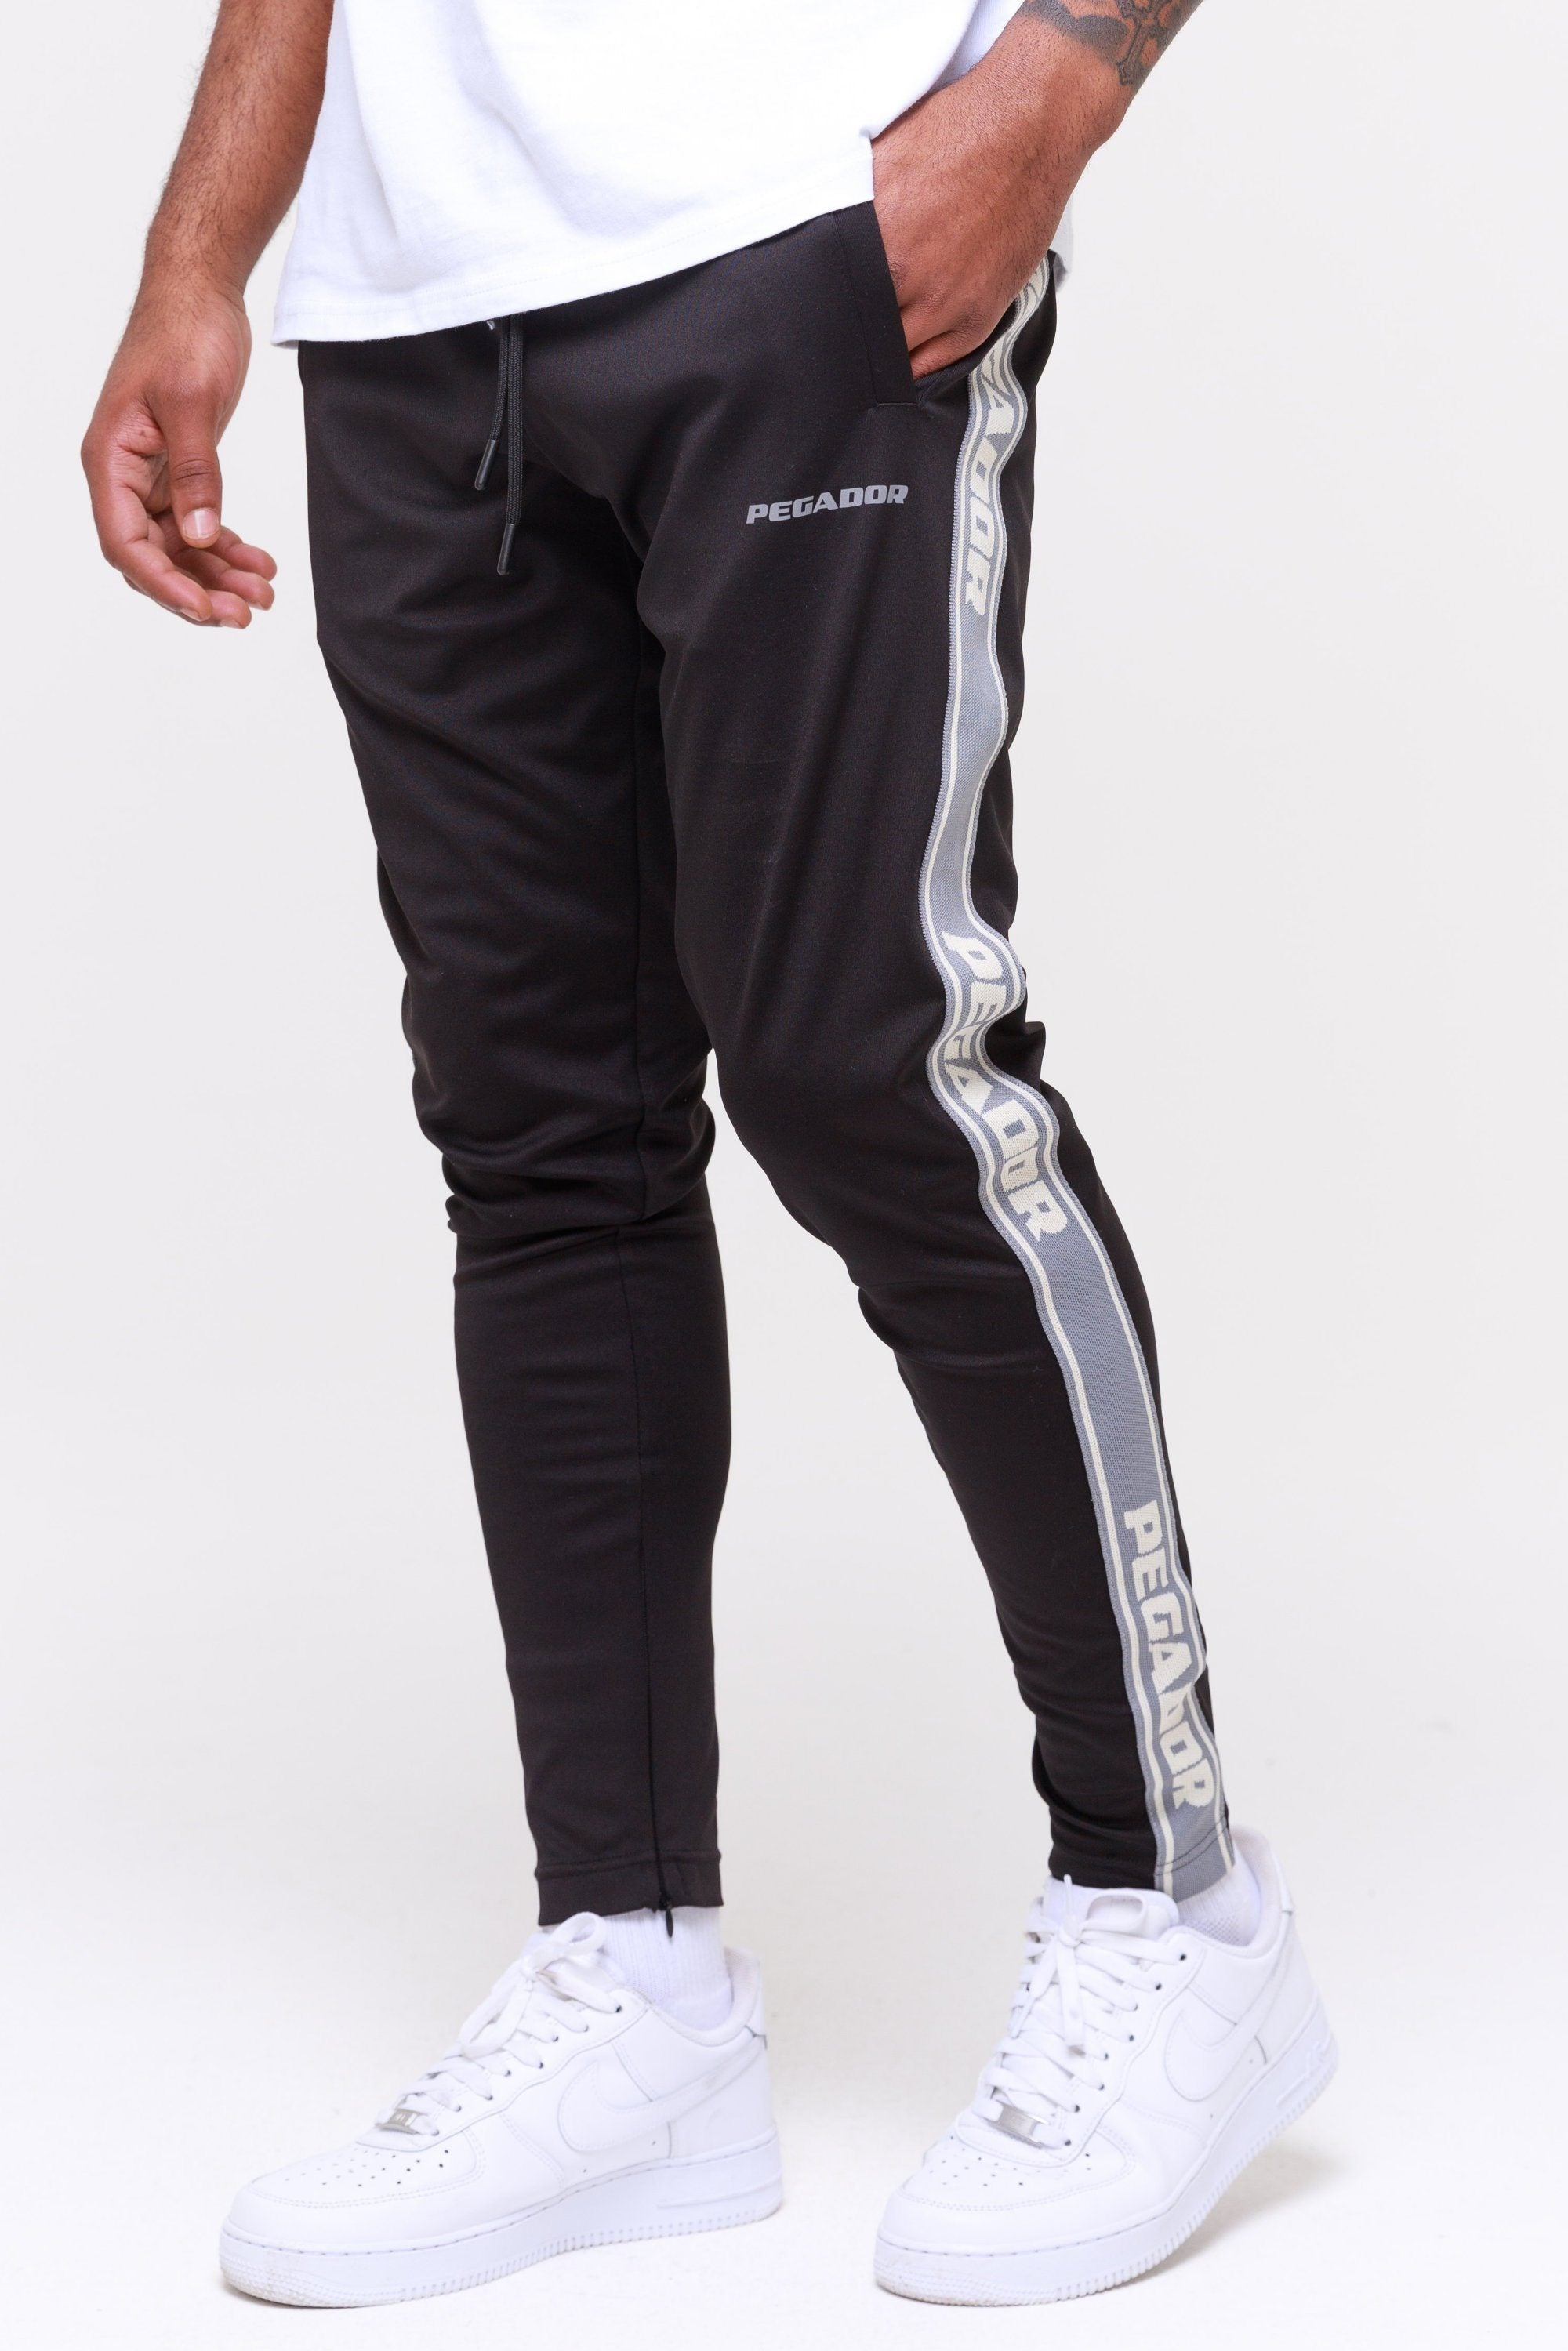 Logo Sweatpants Black Coconut Milk Pants Wild Society